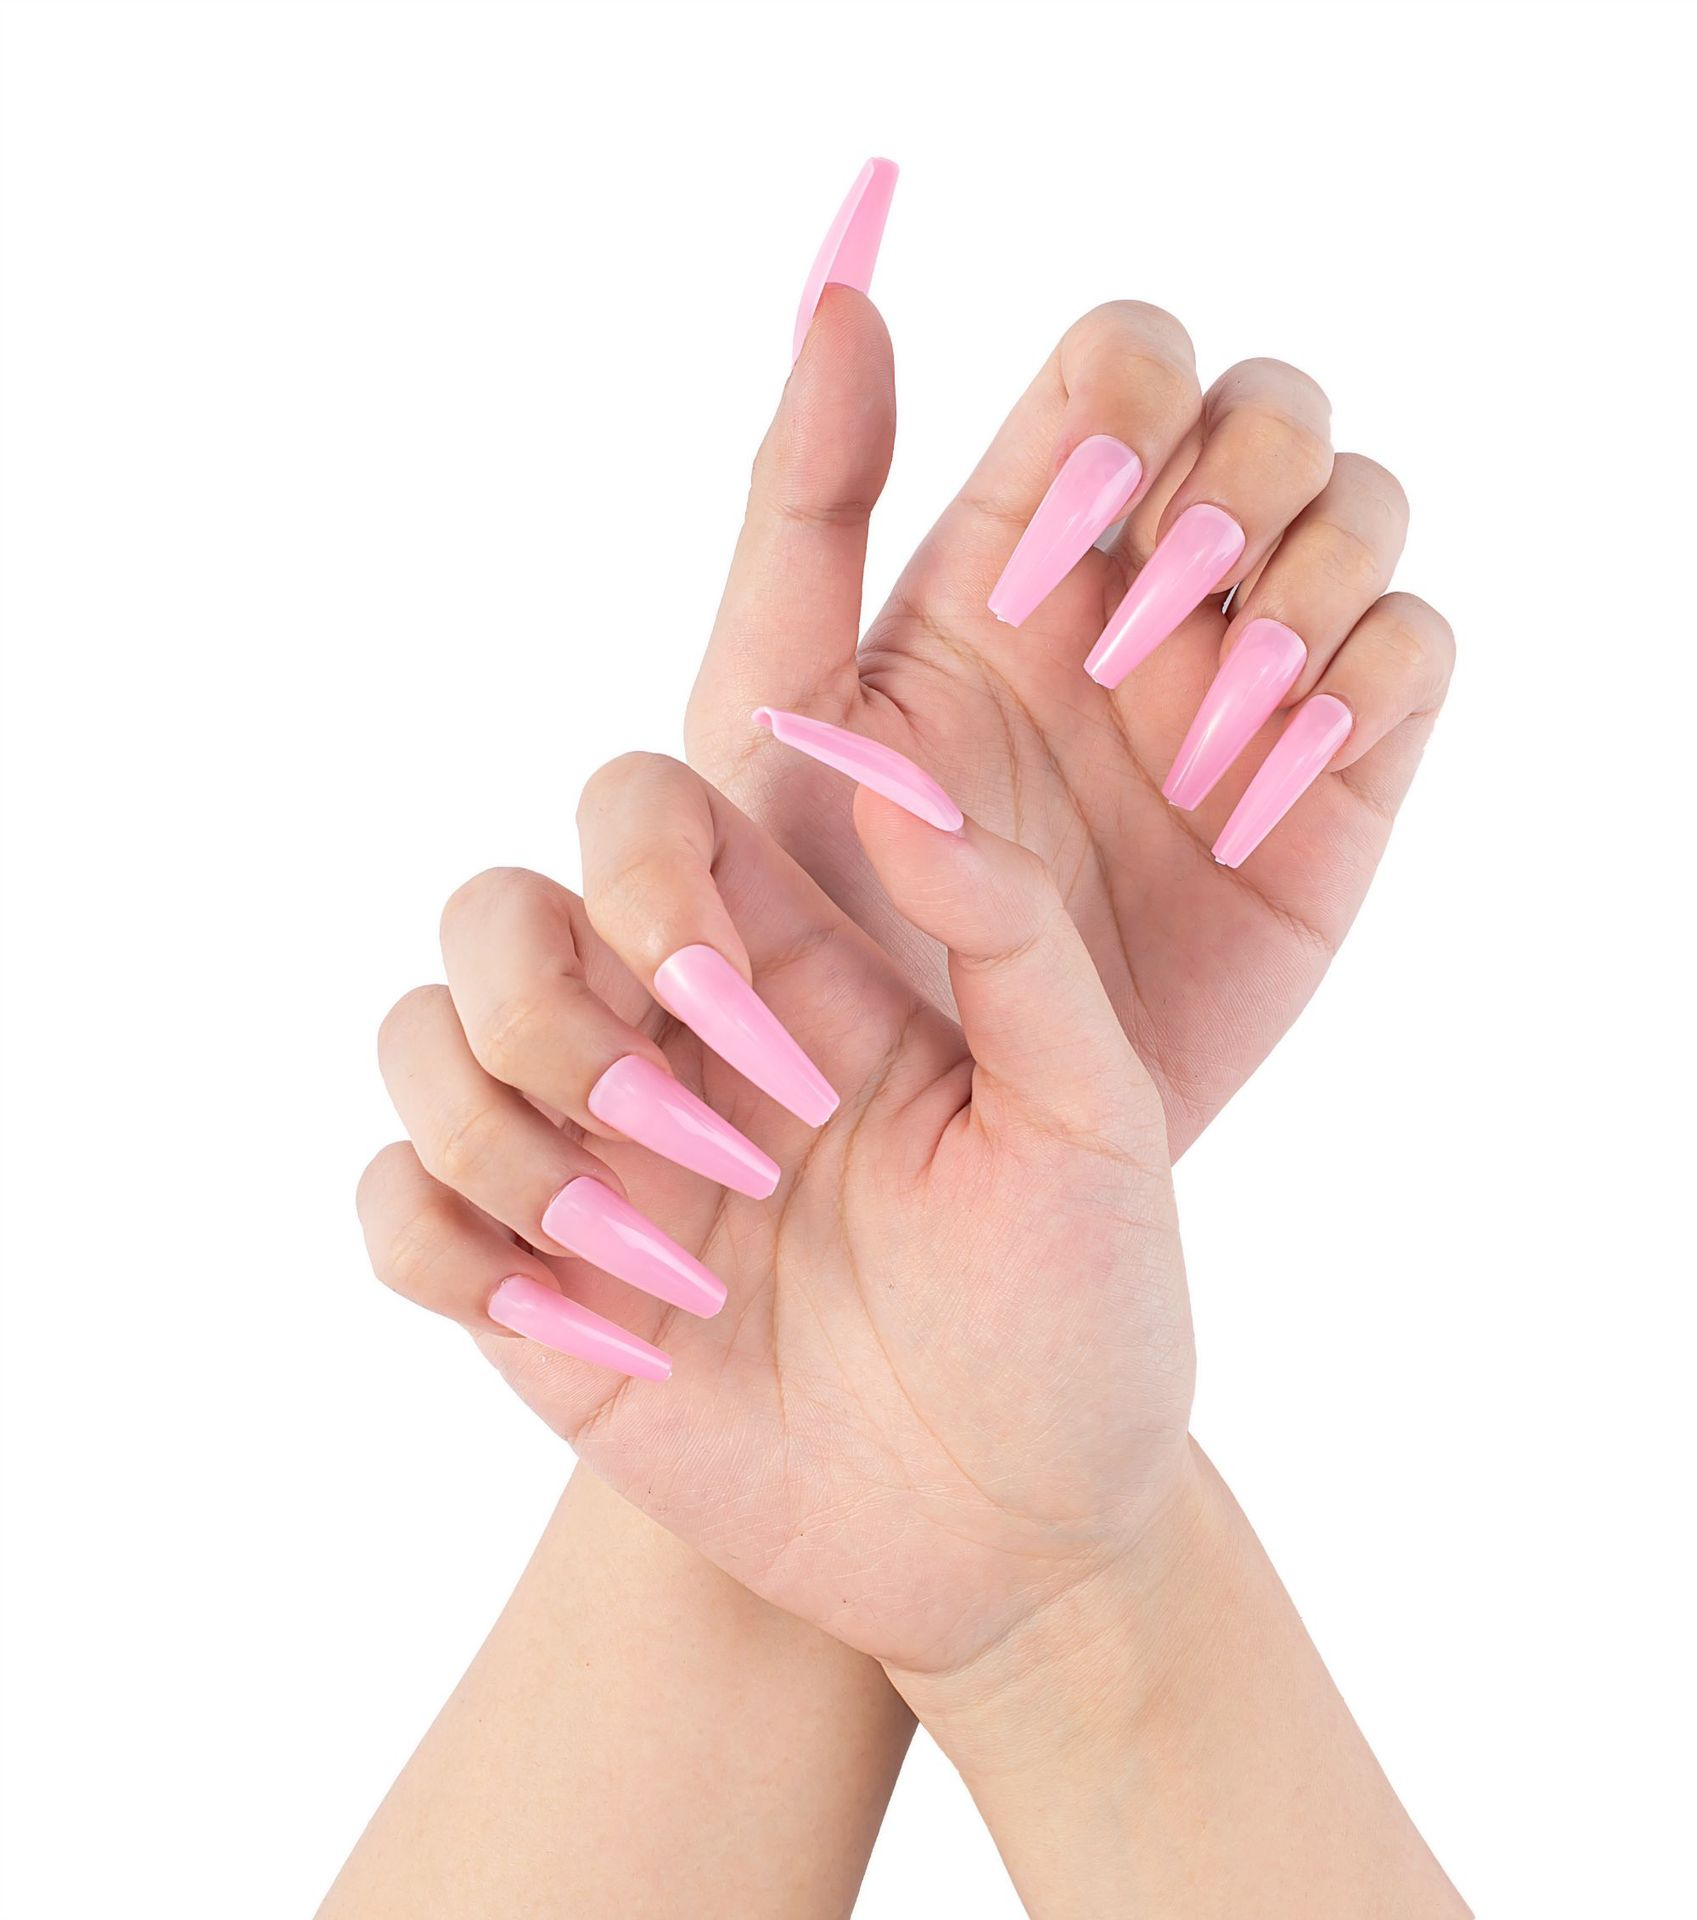 20pcs/Box Full Nail Attachment Nail Wearers Long Extension Nail Solid Color Ballet Coffin Nail Art For Women And Girls